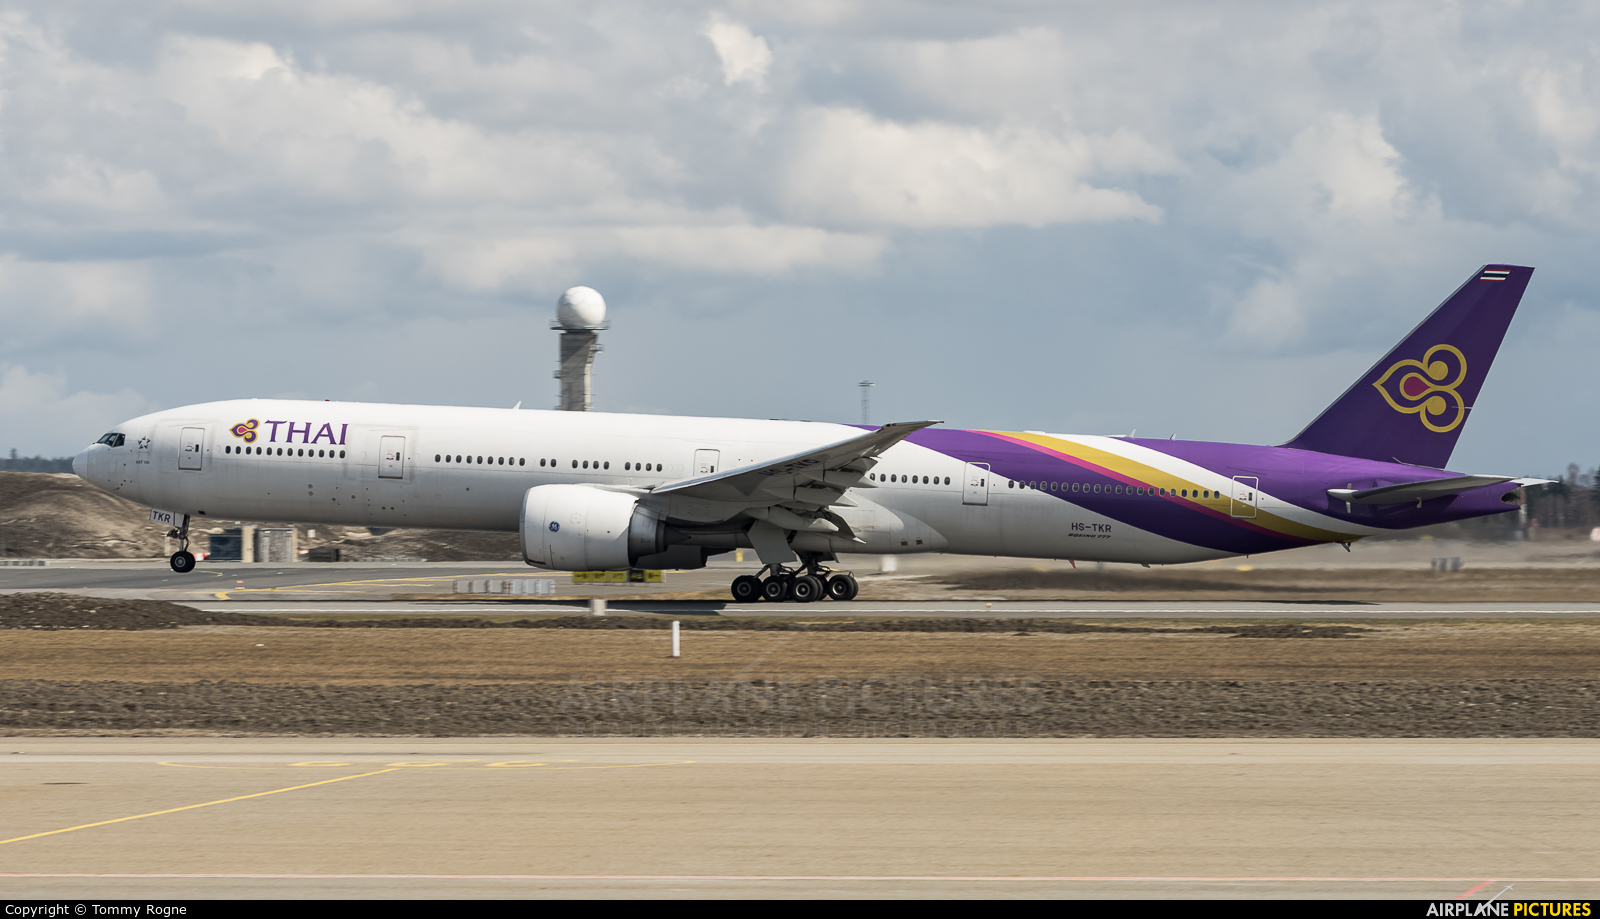 Thai Airways HS-TKR aircraft at Oslo - Gardermoen